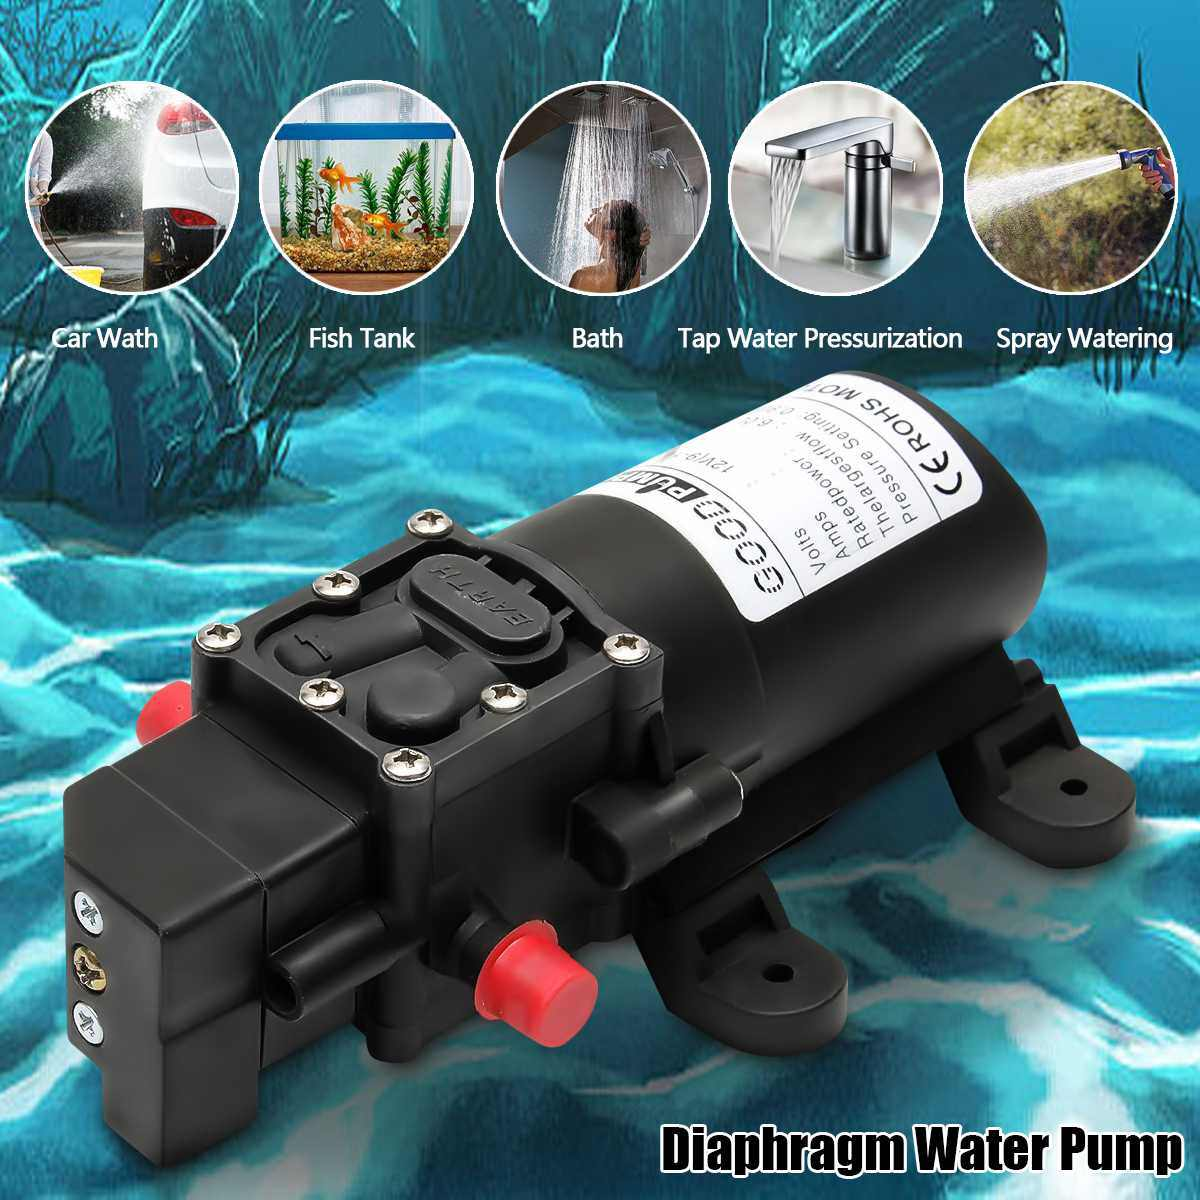 Durable DC 12V 130PSI Agricultural Electric Water Pump Black Micro High Pressure Diaphragm Water Sprayer Car Wash 12 V